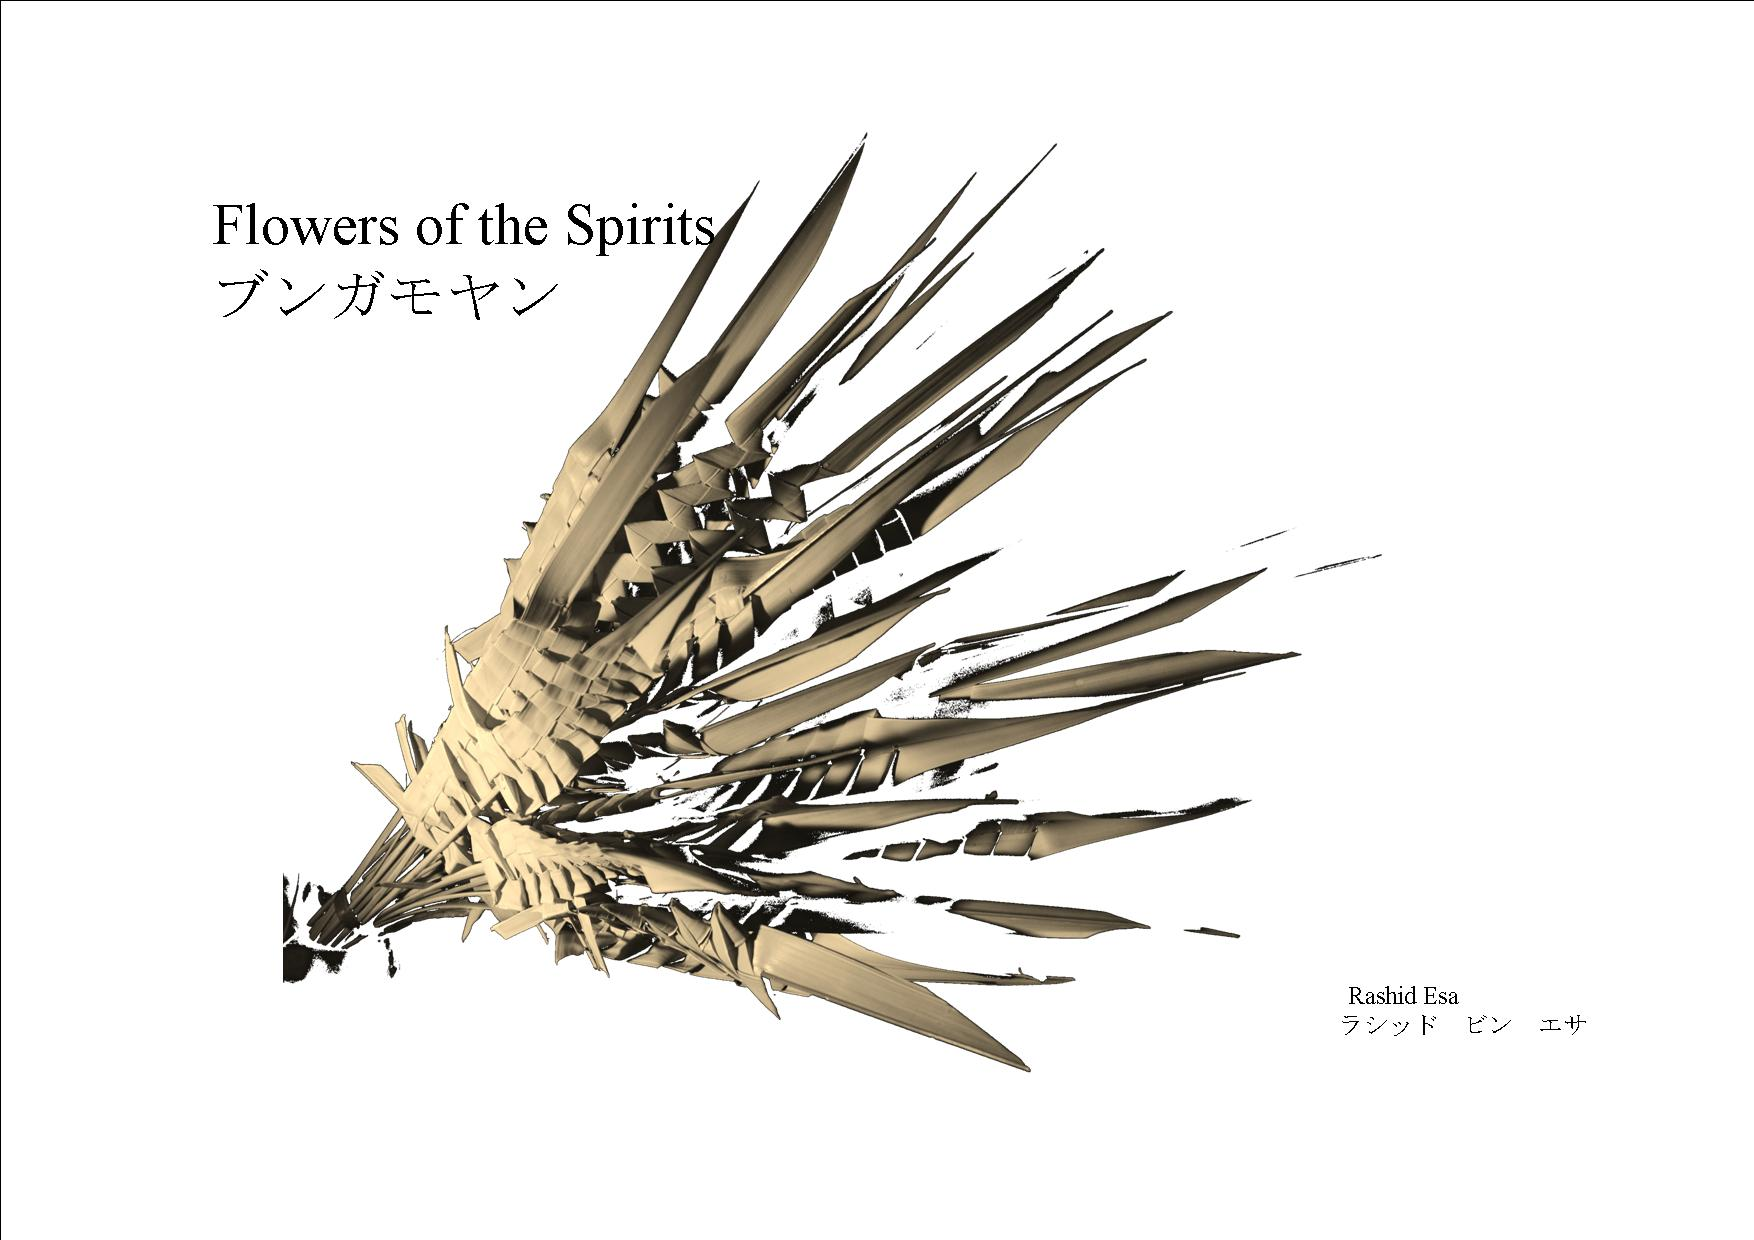 Flowers of the Spirits with Japanese translation Image